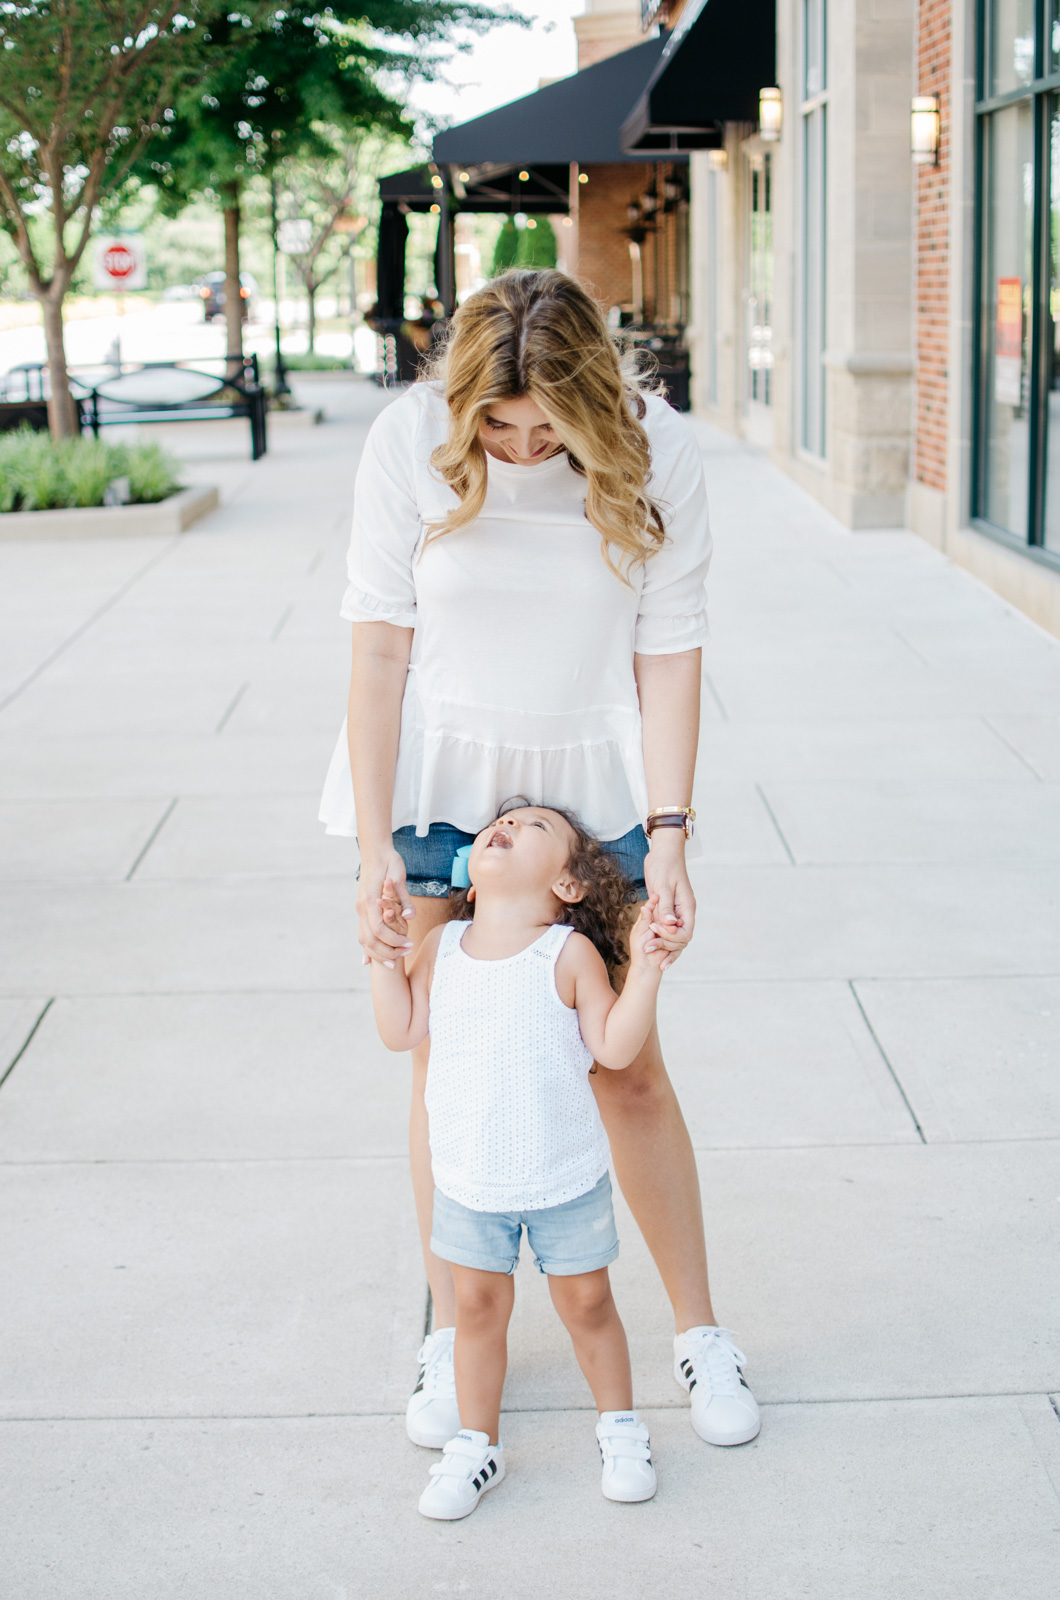 mother daughter adidas sneakers outfits | For more mother-daughter outfit ideas, head to bylaurenm.com!